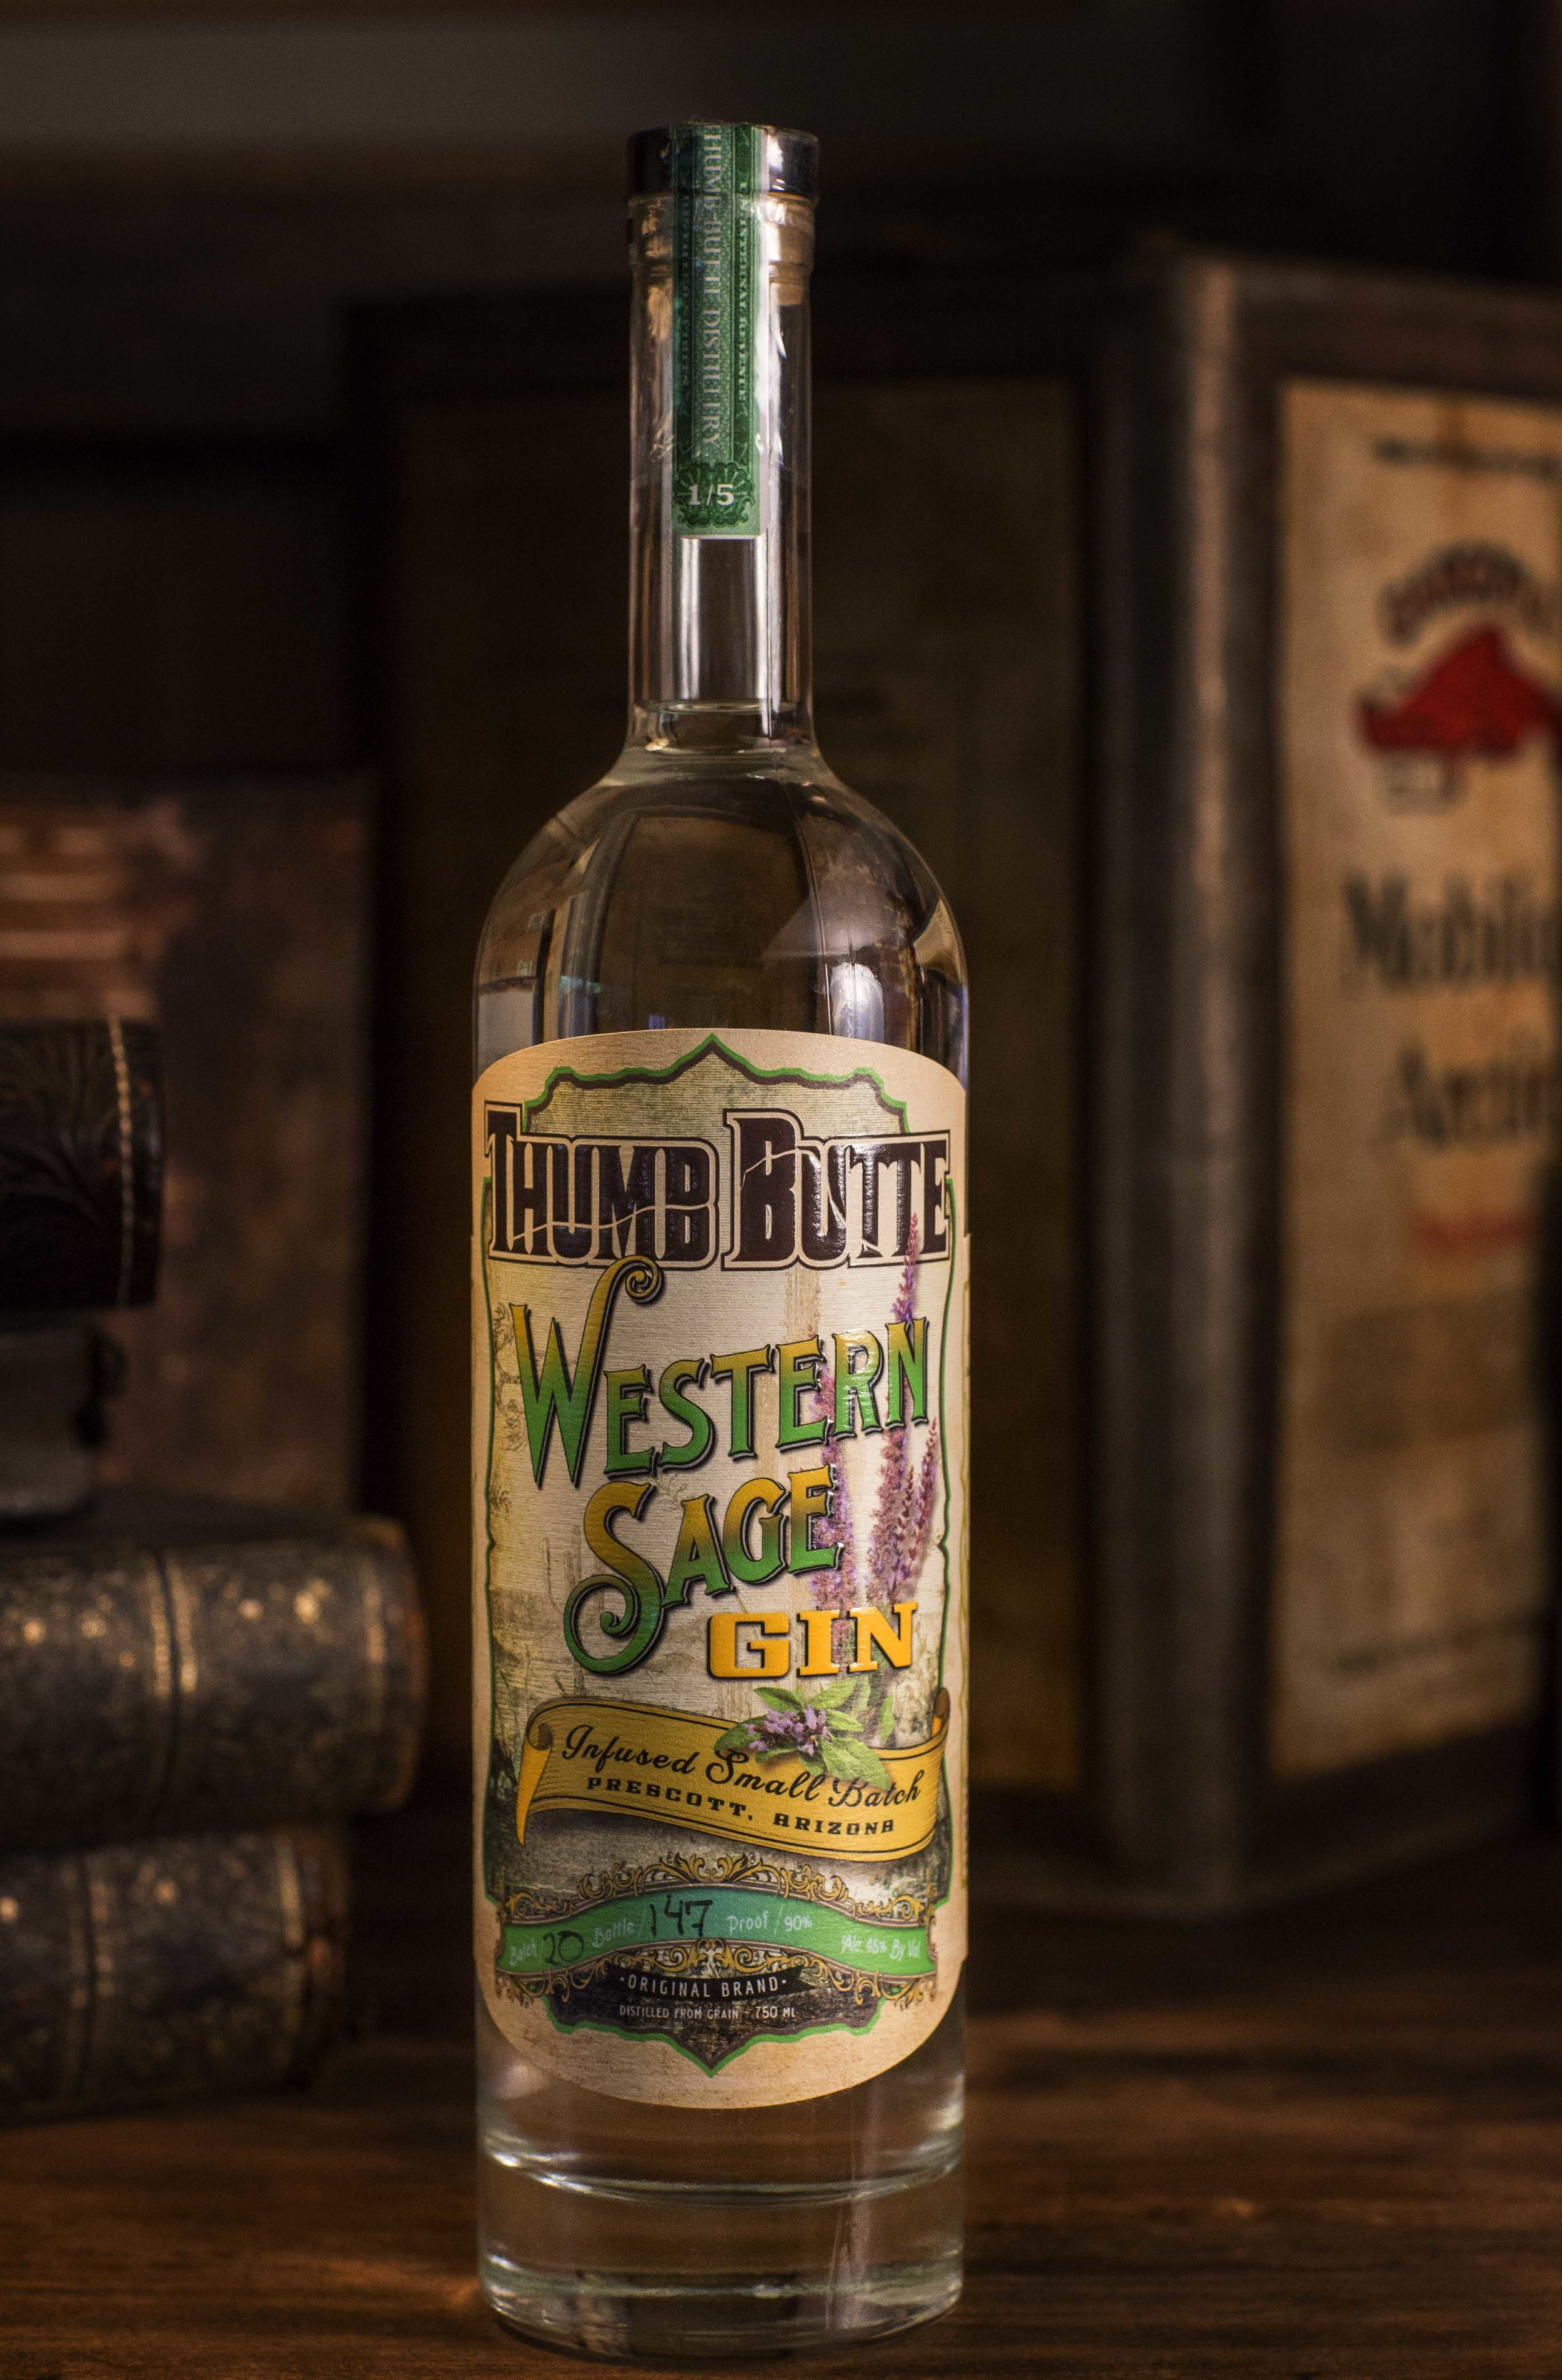 Bottle label design for Thumb Butte Distillery Western Sage Gin